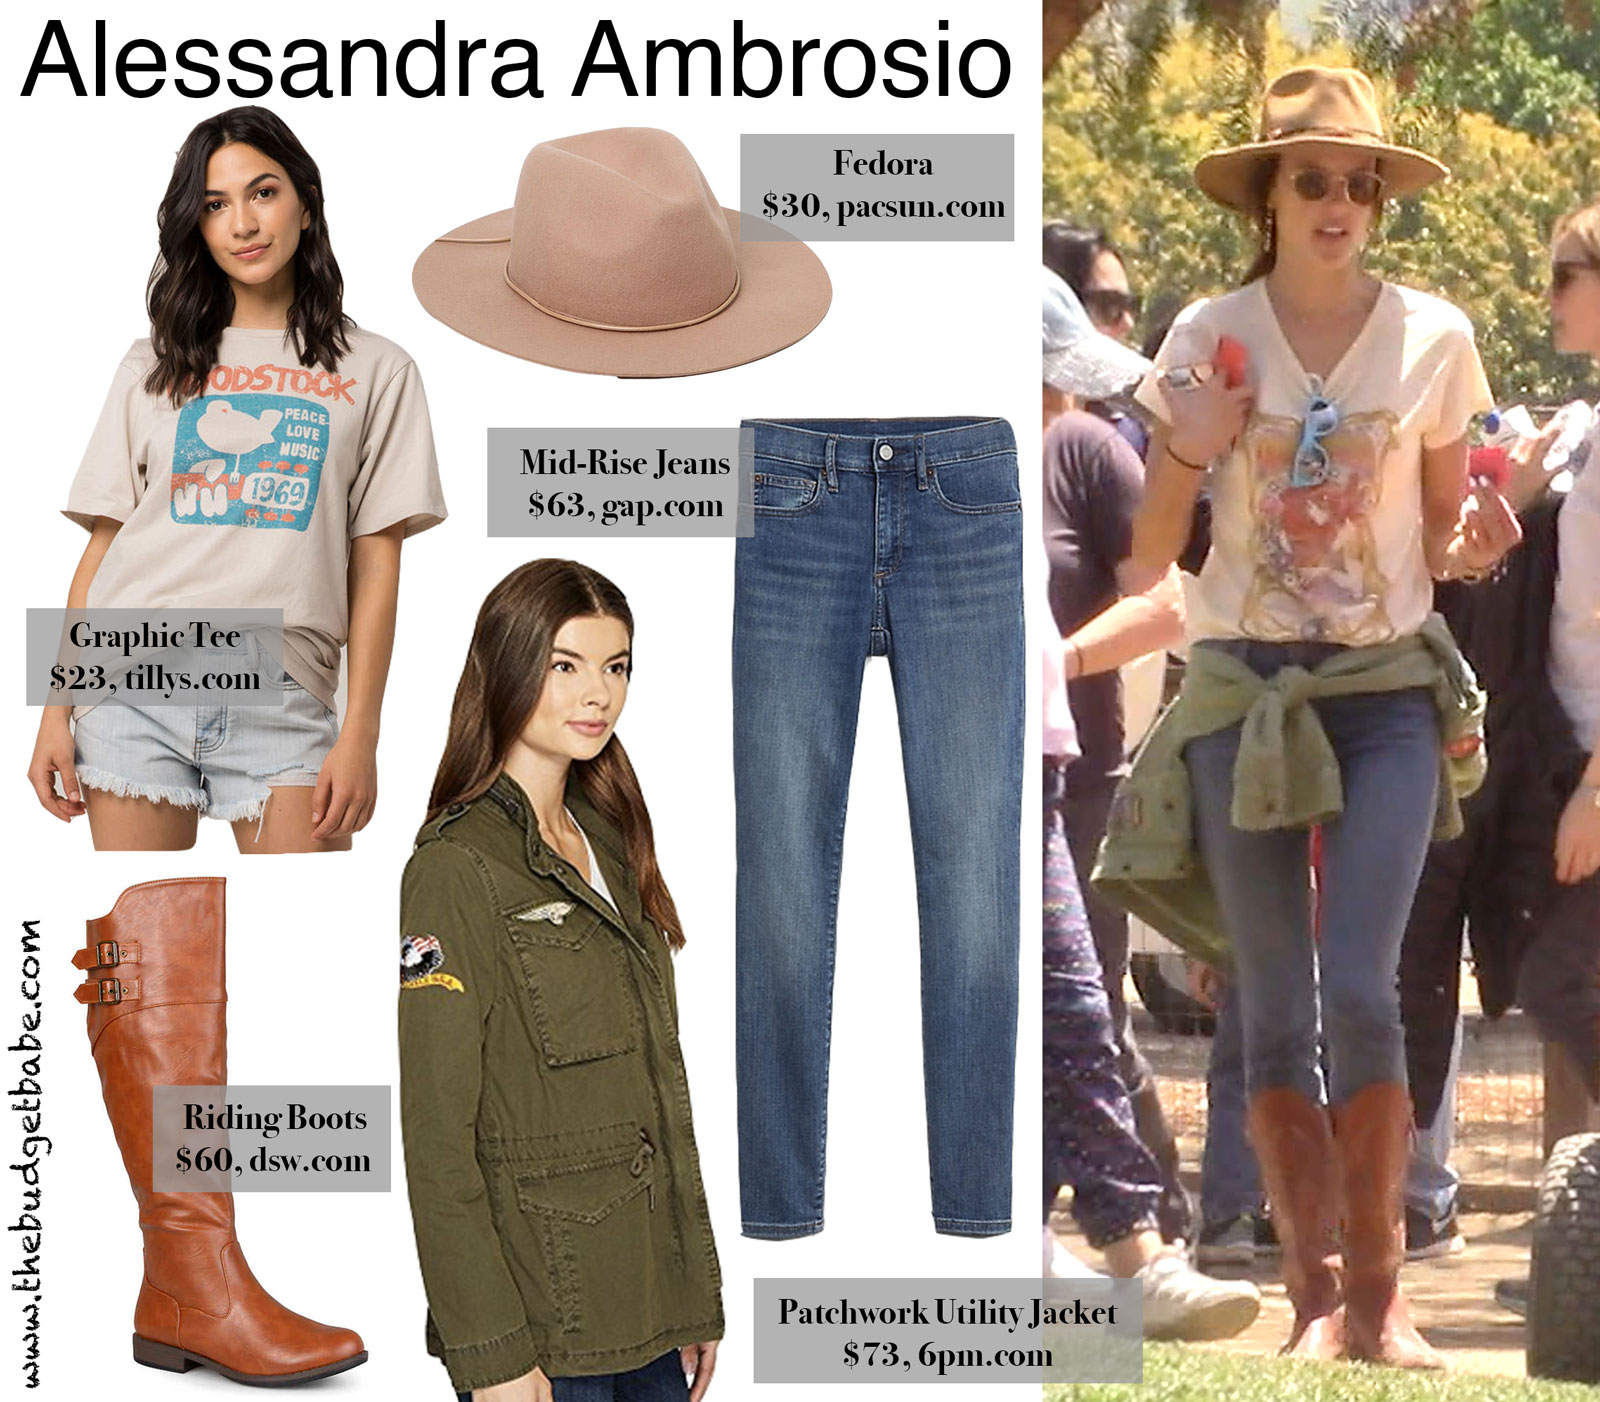 1c5cd64fb3 Alessandra Ambrosio Graphic Tee and Fedora Look for Less